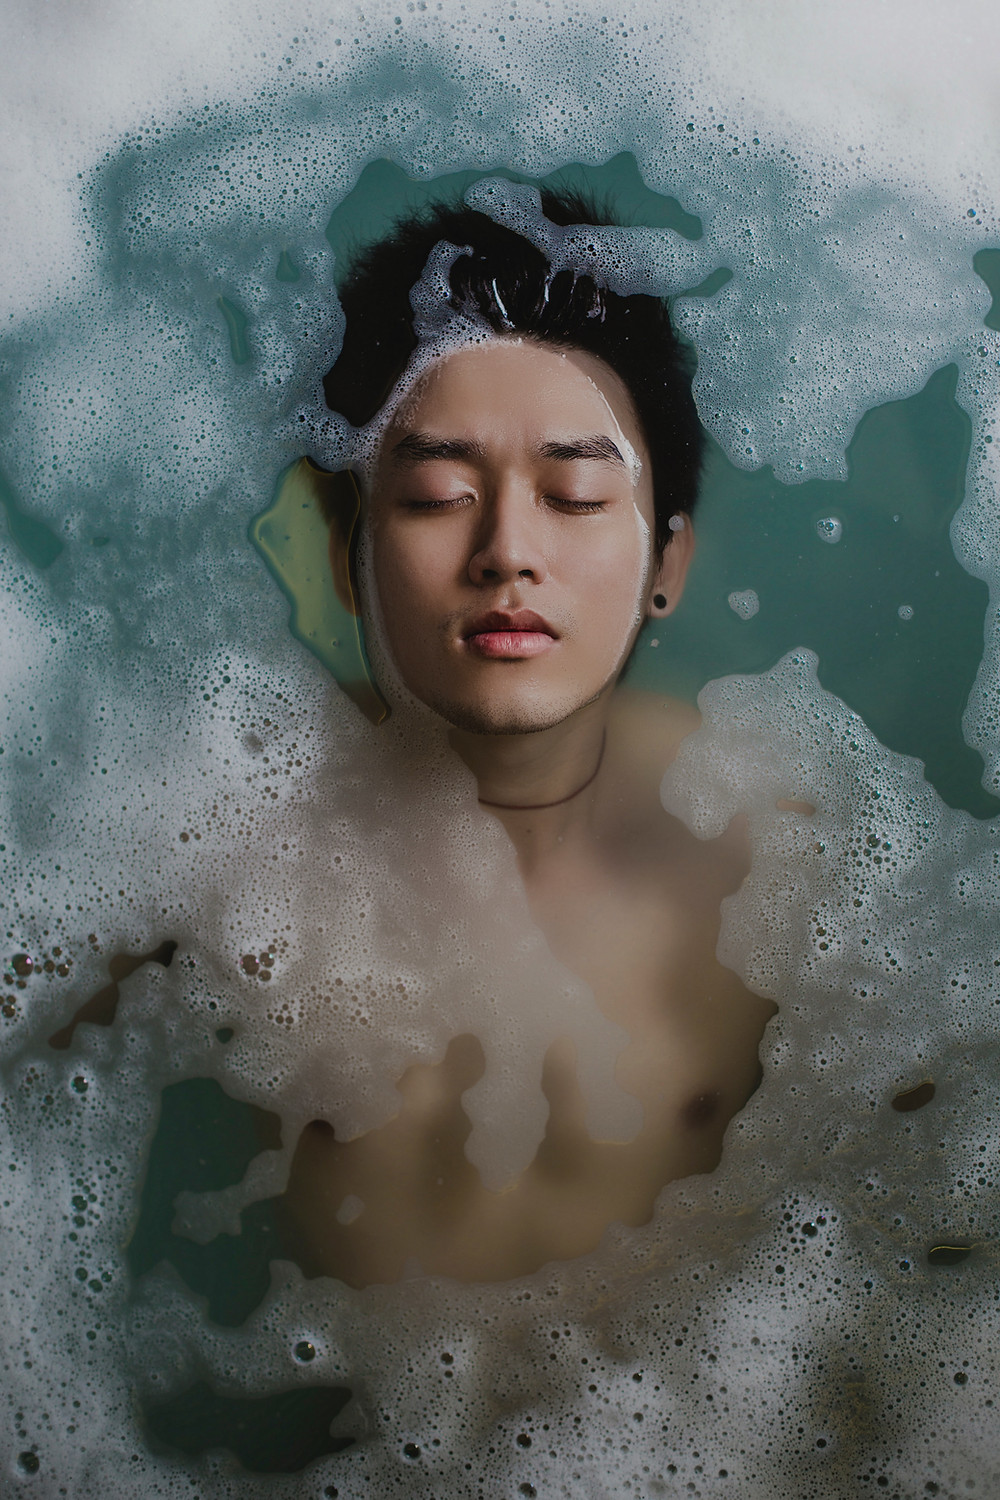 A man practices self-care while floating in sudsy water.